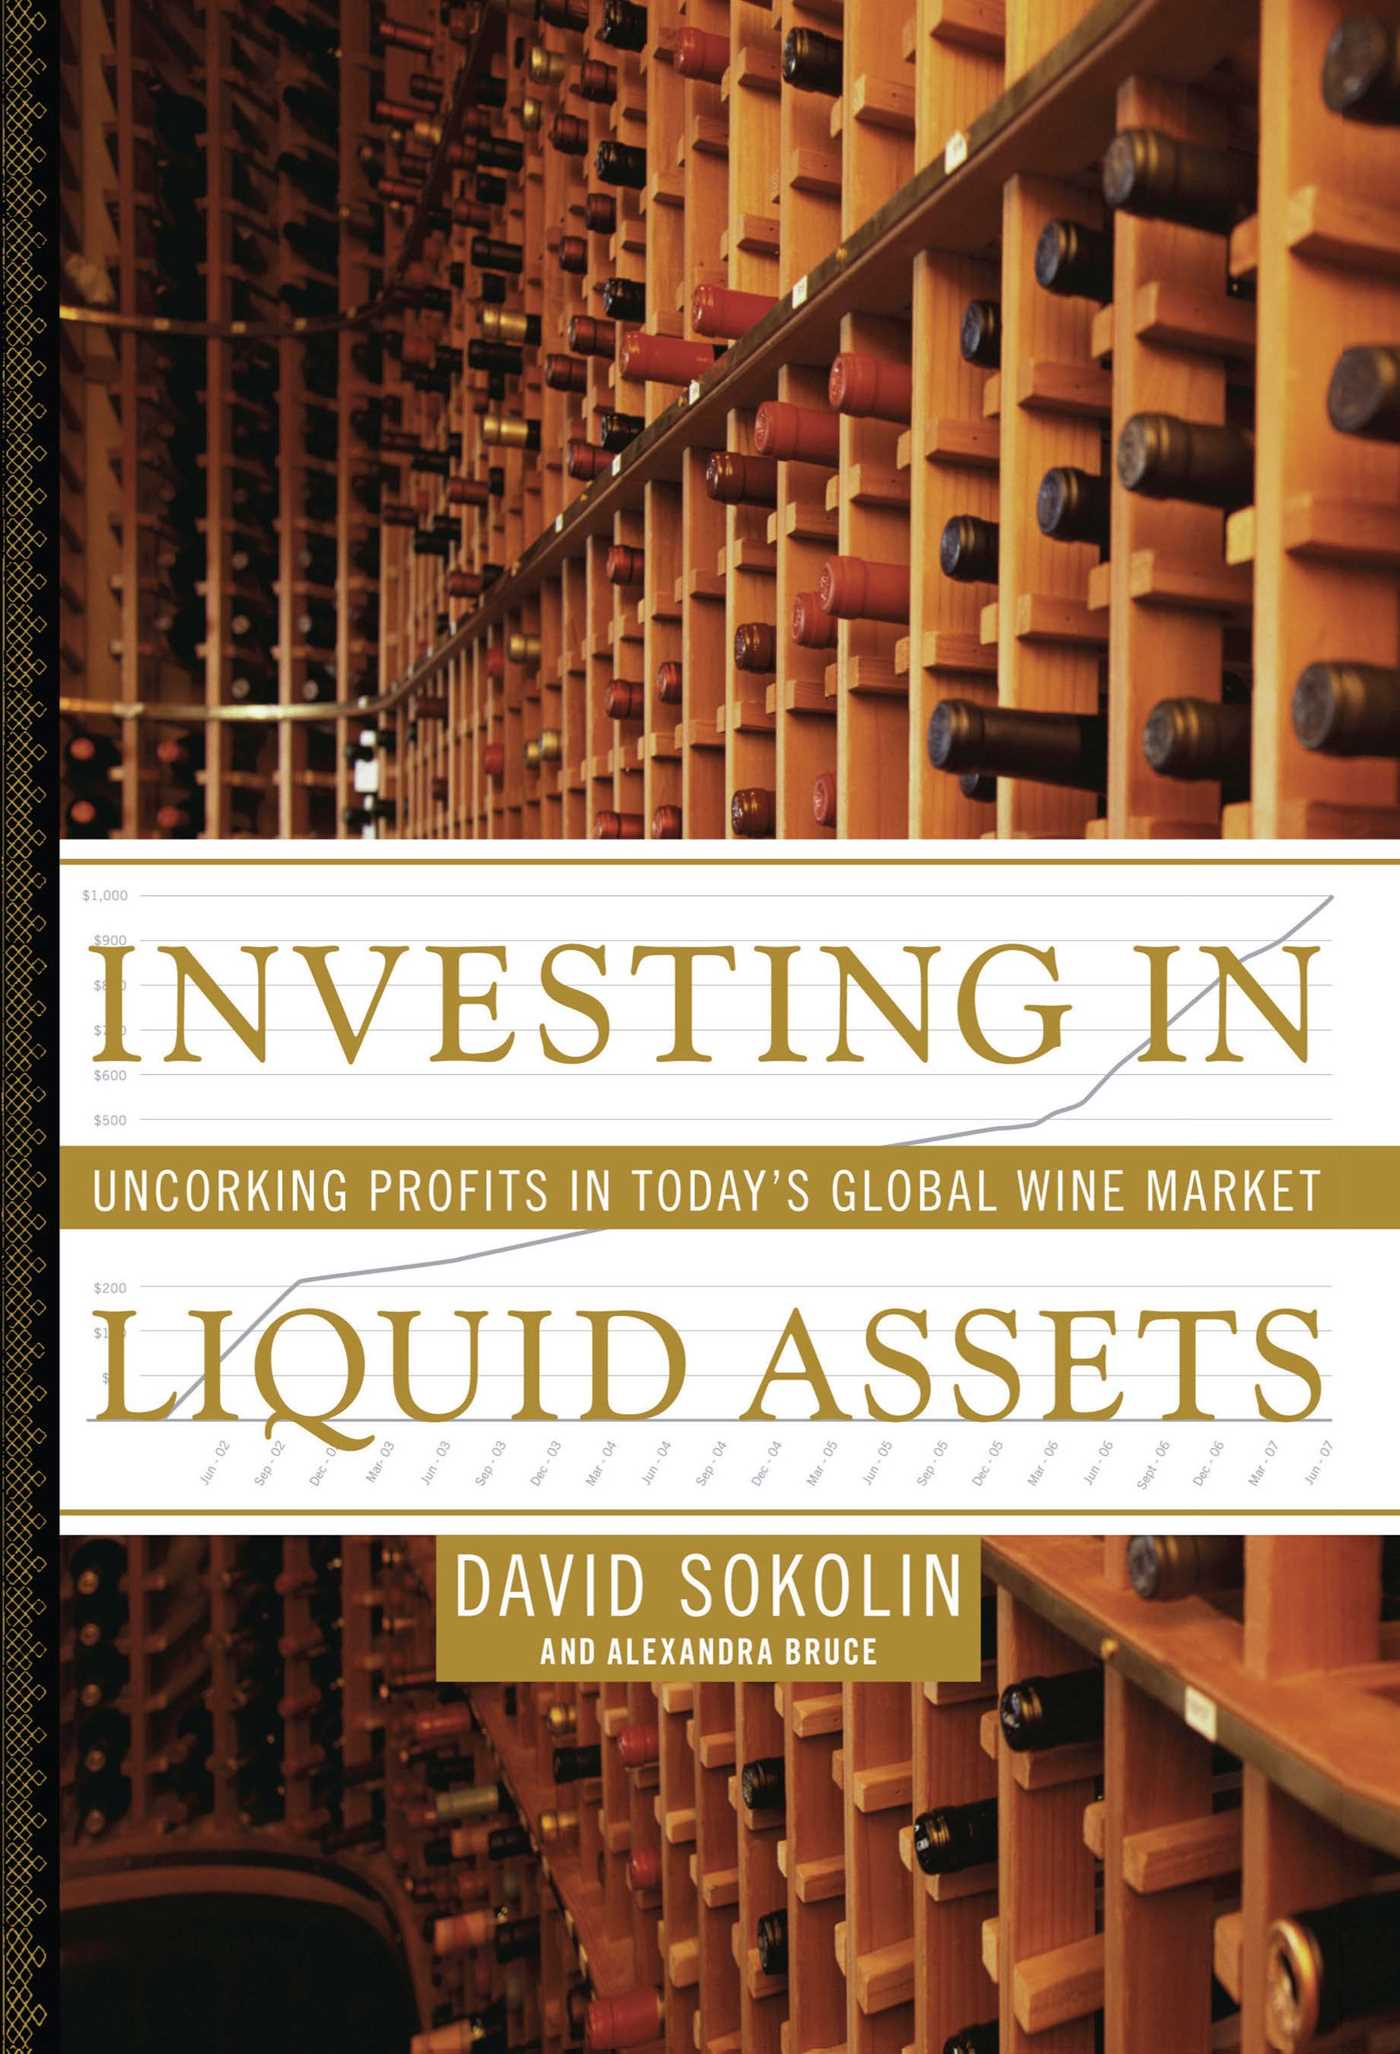 Investing-in-liquid-assets-9781416550181_hr